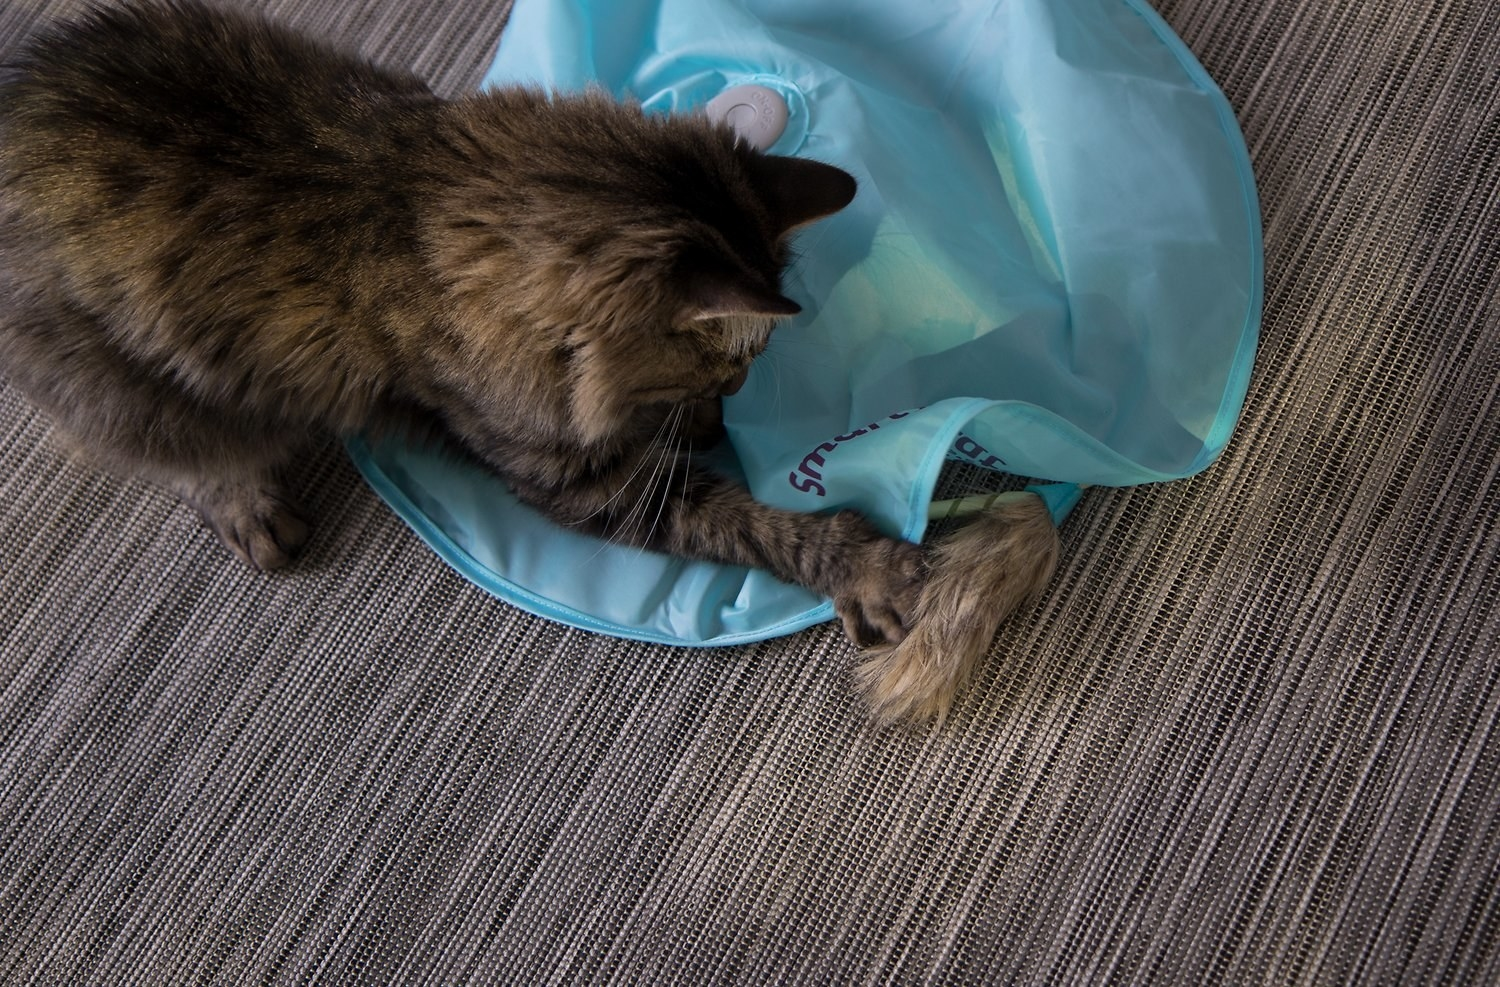 A cat playing with the toy